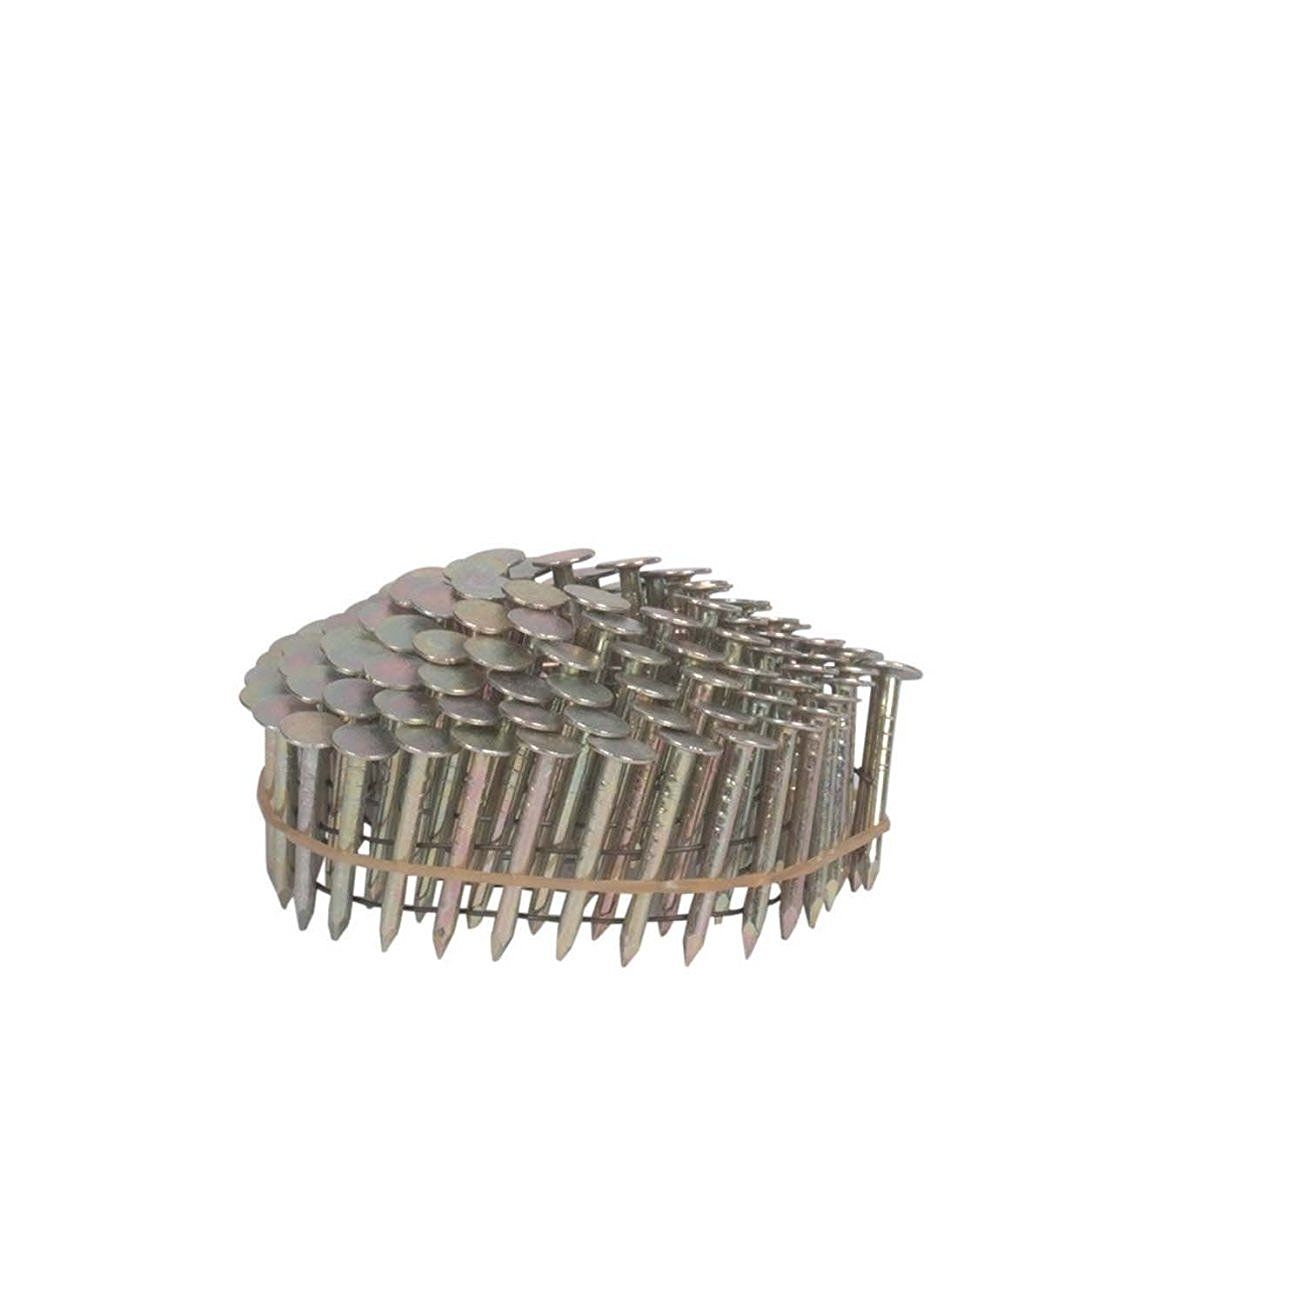 Bostitch Coil Roofing Nail Click On The Image For Additional Details Roofing Nails Roofing Nails